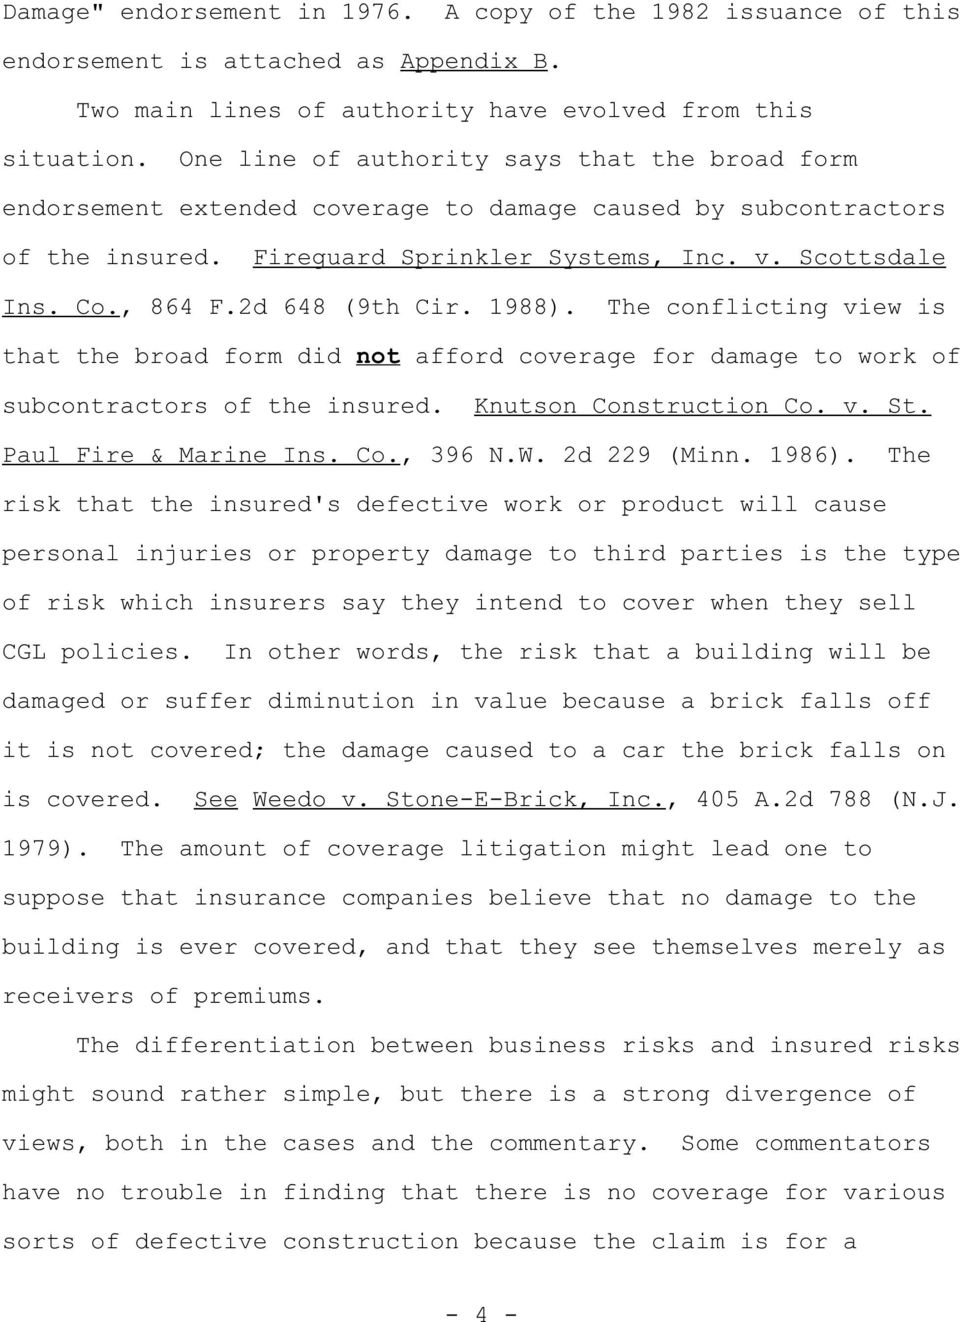 2d 648 (9th Cir. 1988). The conflicting view is that the broad form did not afford coverage for damage to work of subcontractors of the insured. Knutson Construction Co. v. St. Paul Fire & Marine Ins.